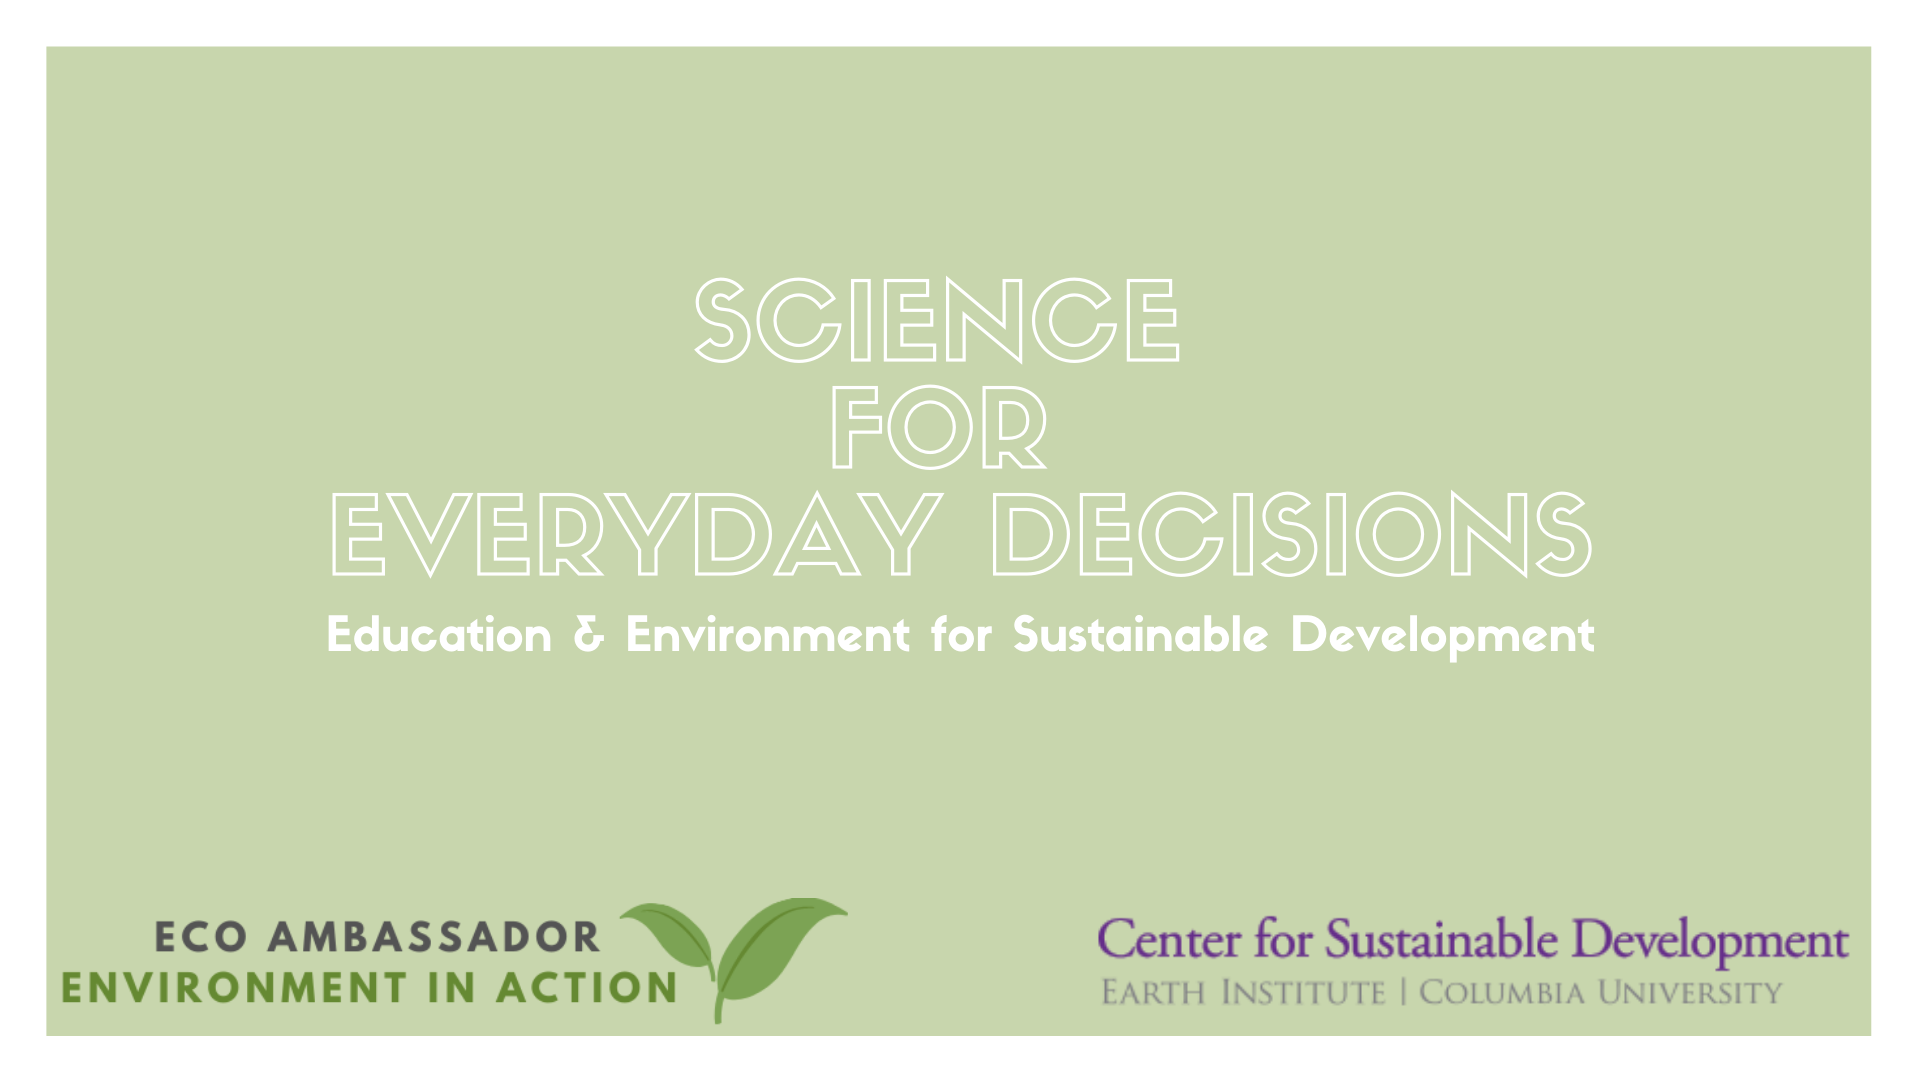 Science for Everyday Decisions